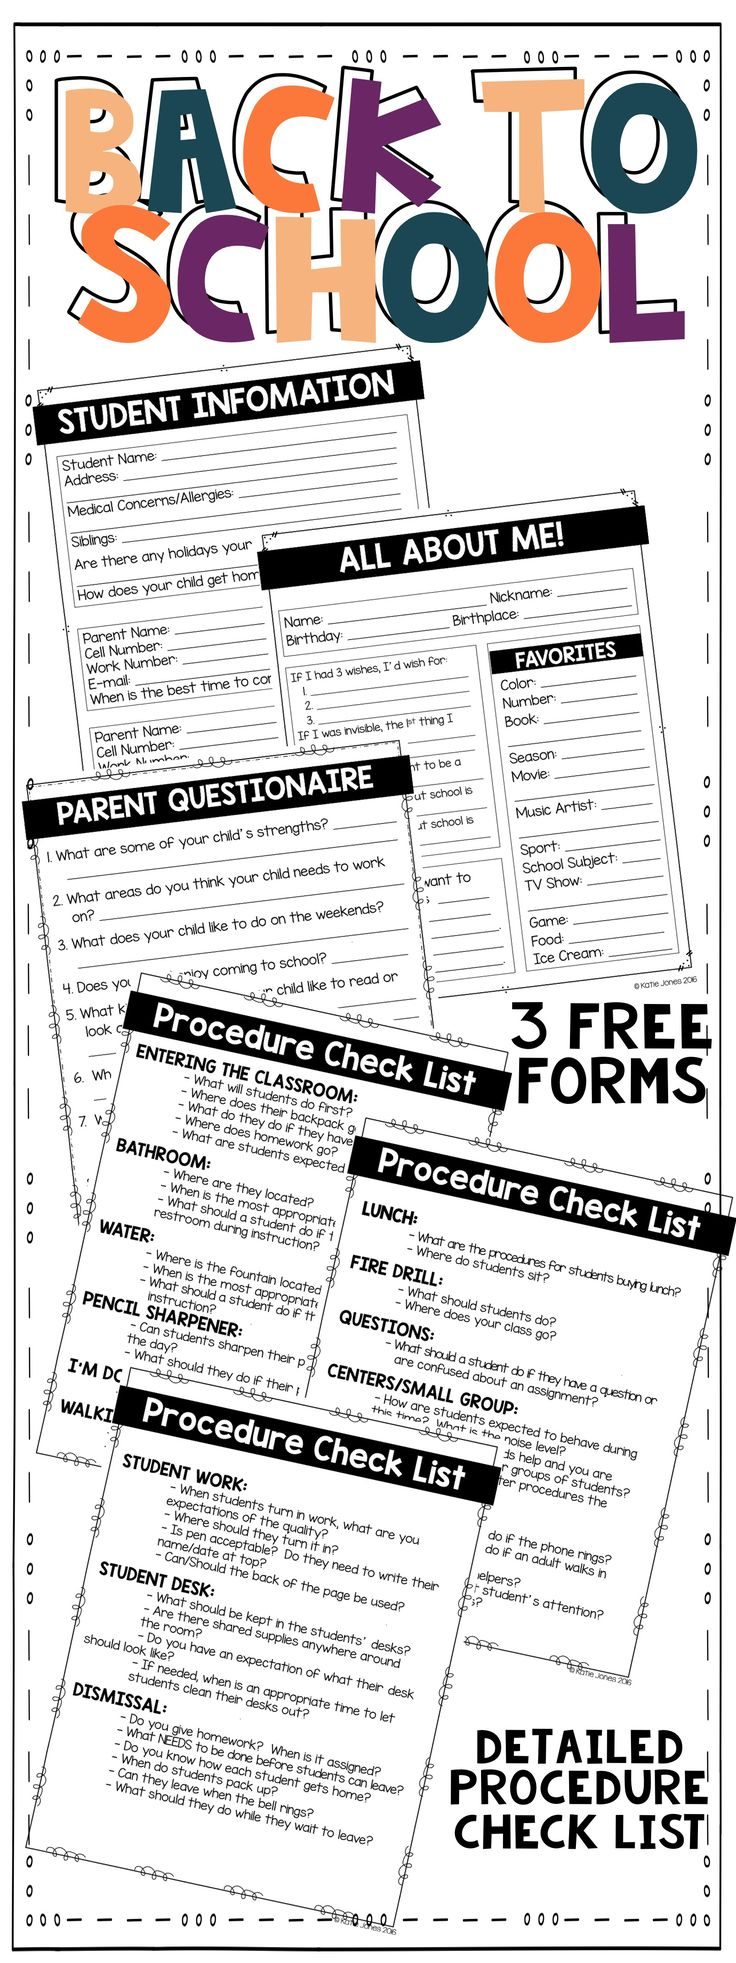 FREE!!!! 3 forms to use the first week of school: student information sheet, all…